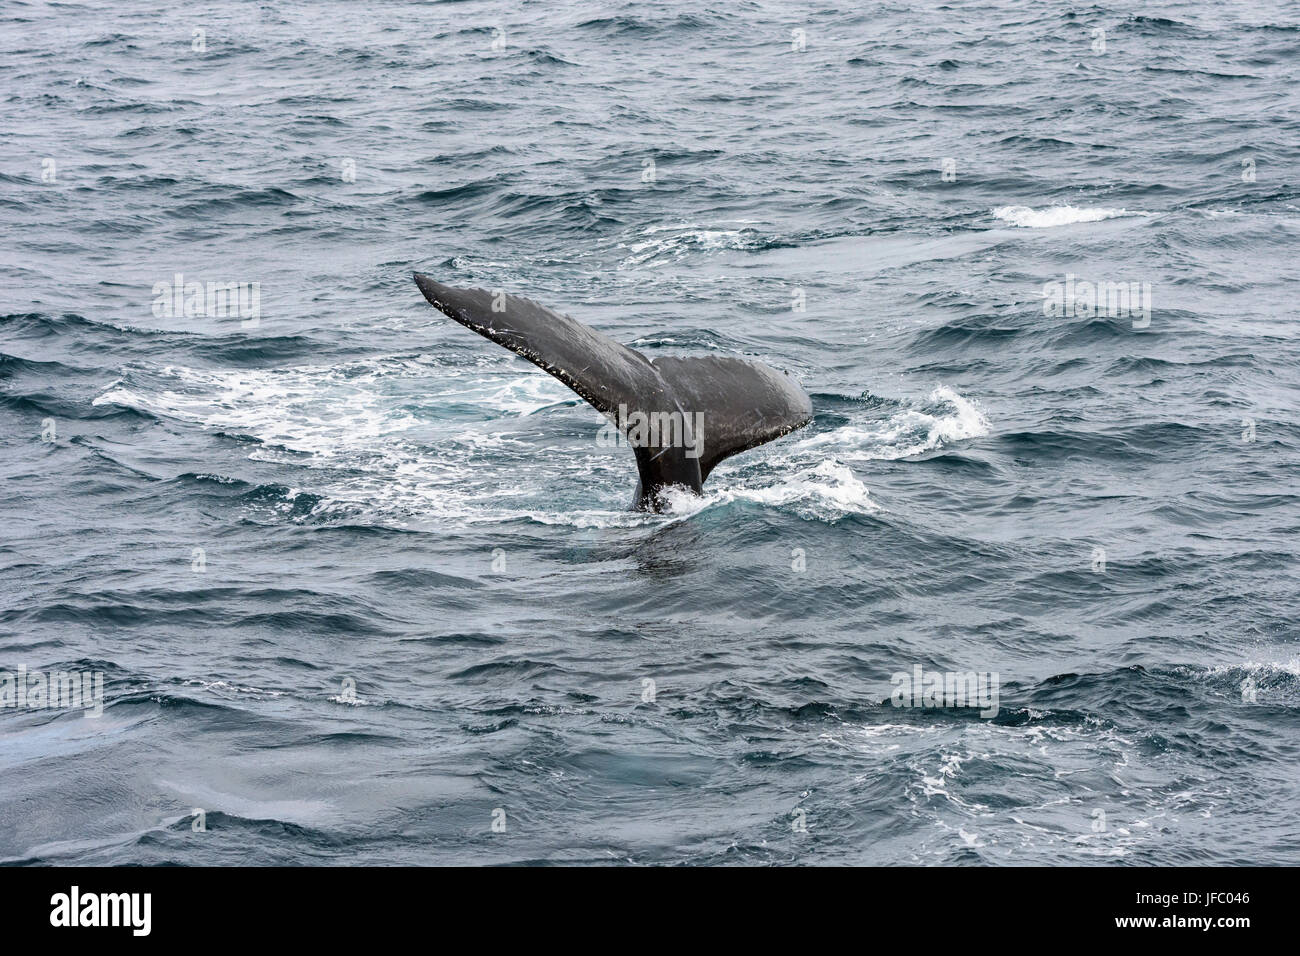 Tail of a humpback whale in Flinders Bay, off the coast of Augusta, Western Australia - Stock Image